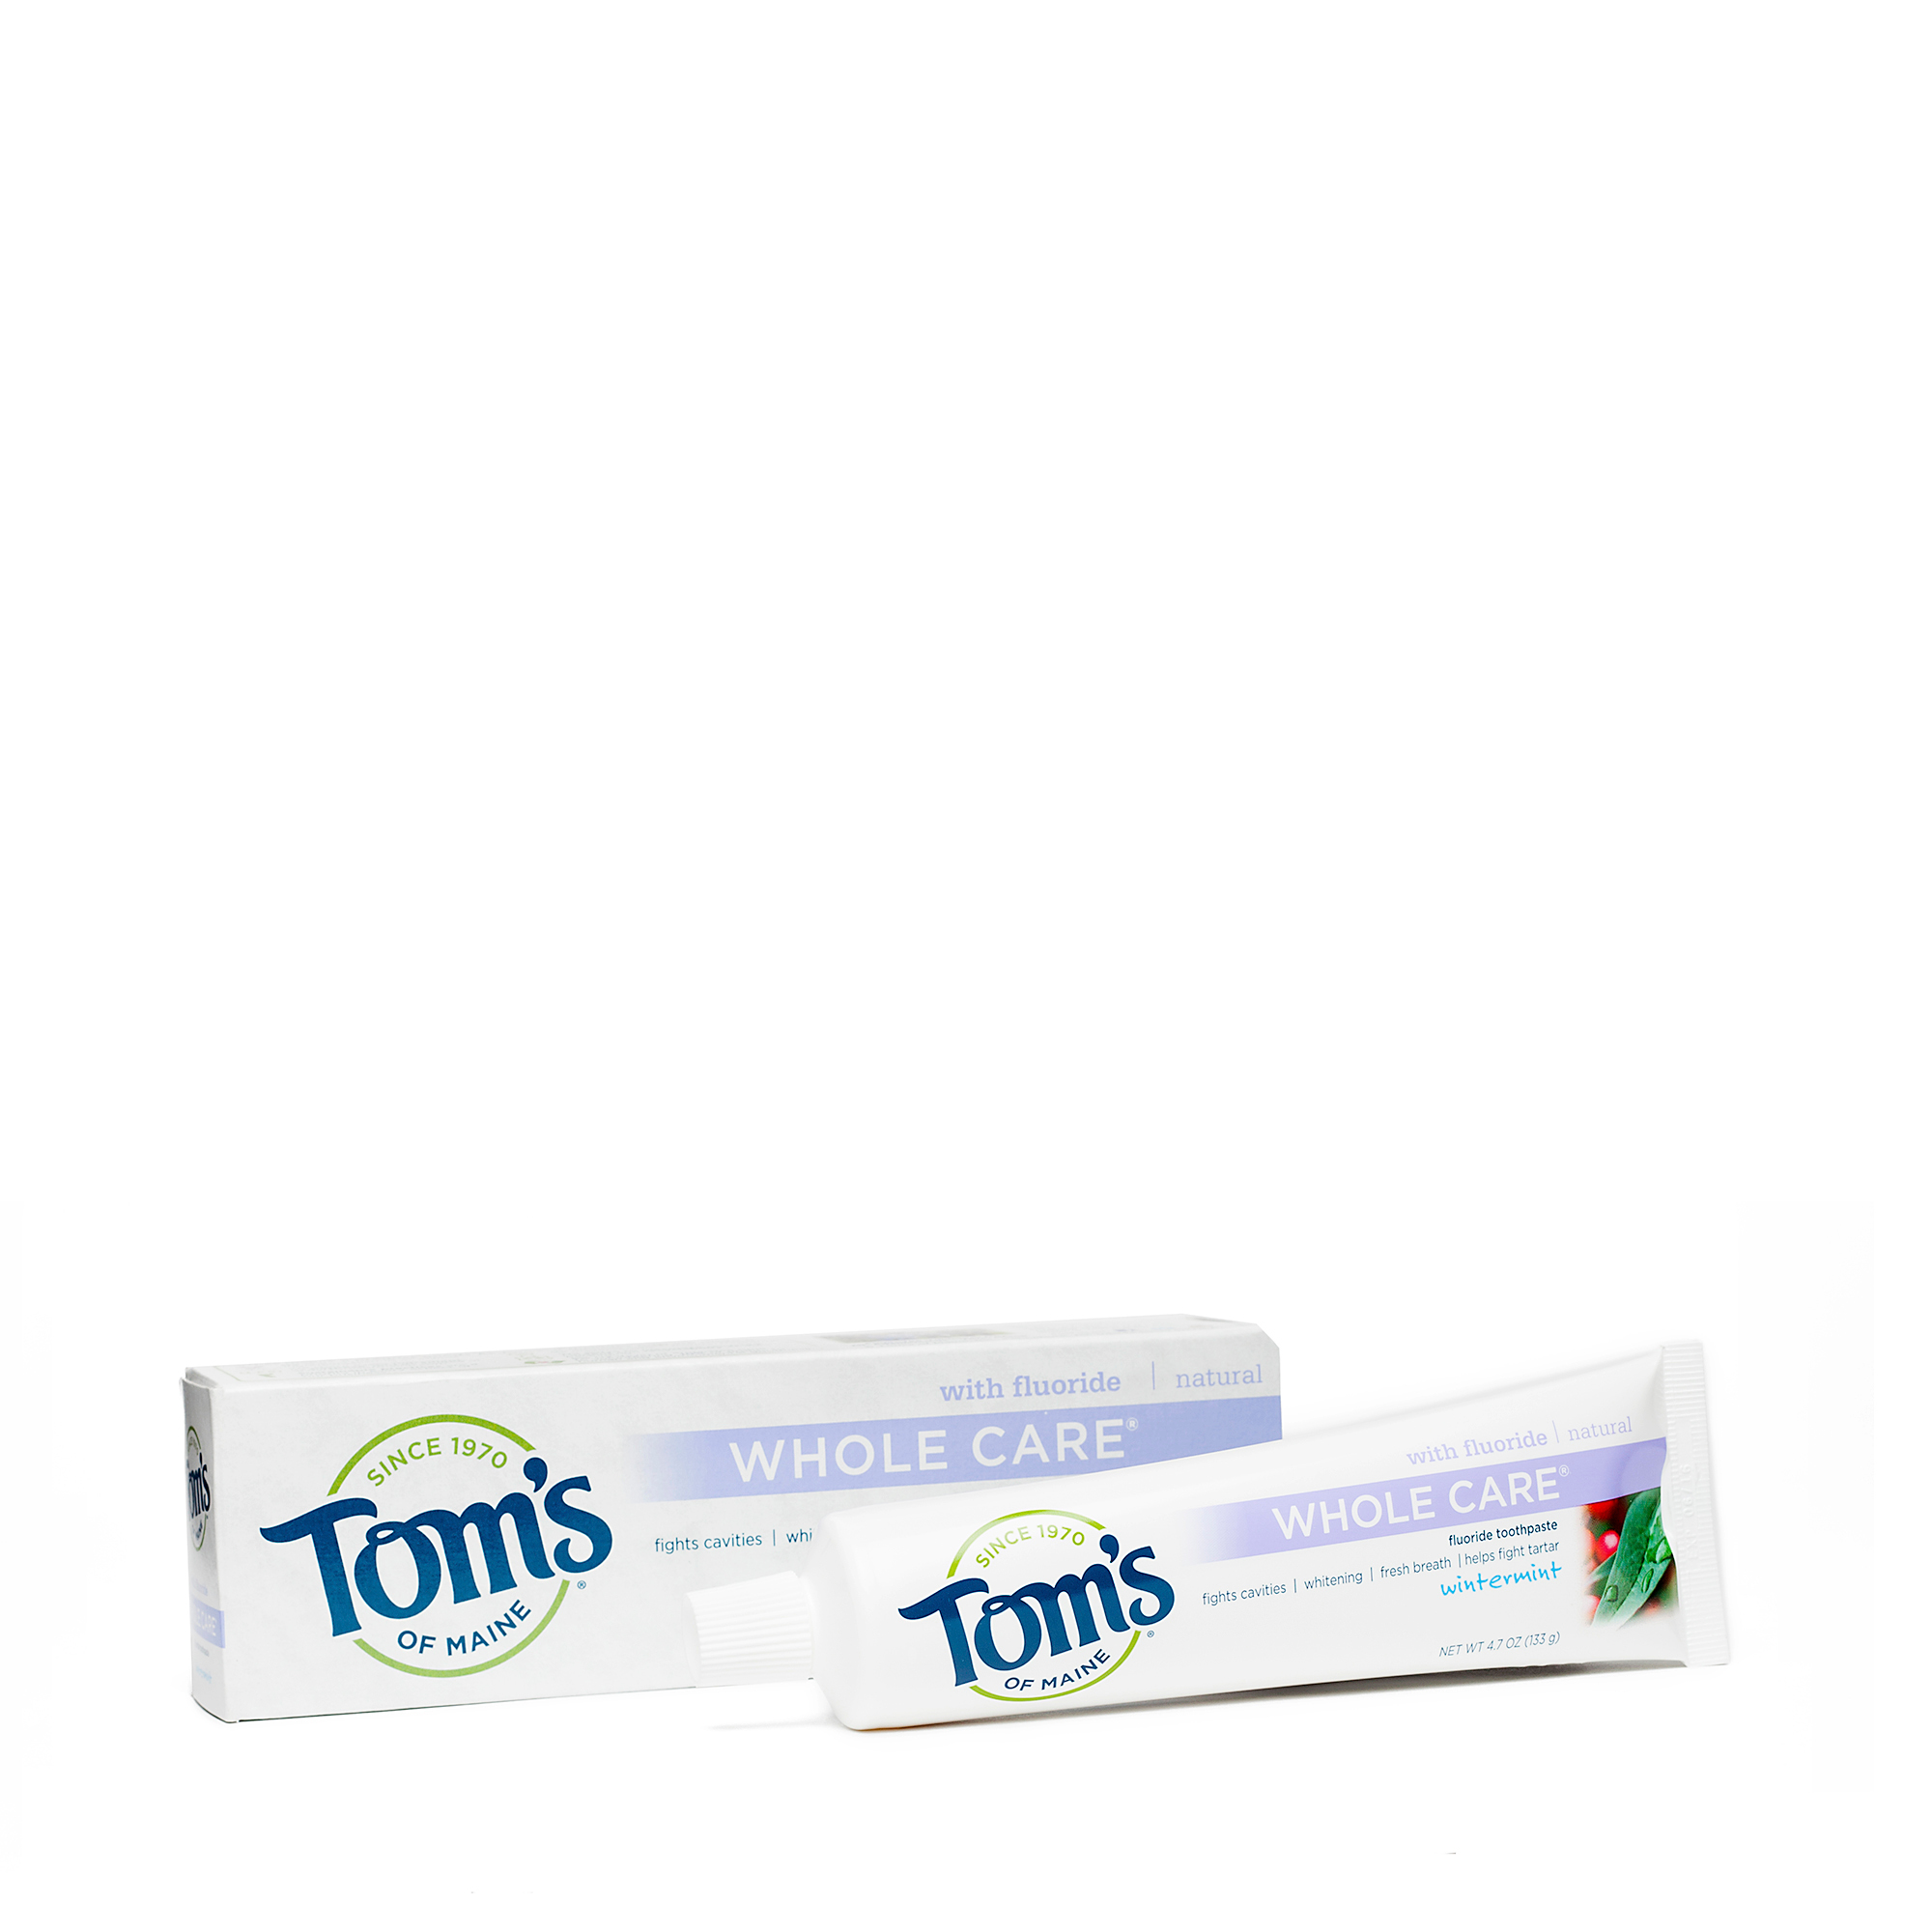 Tom's of Maine Whole Care® Toothpaste - Wintermint